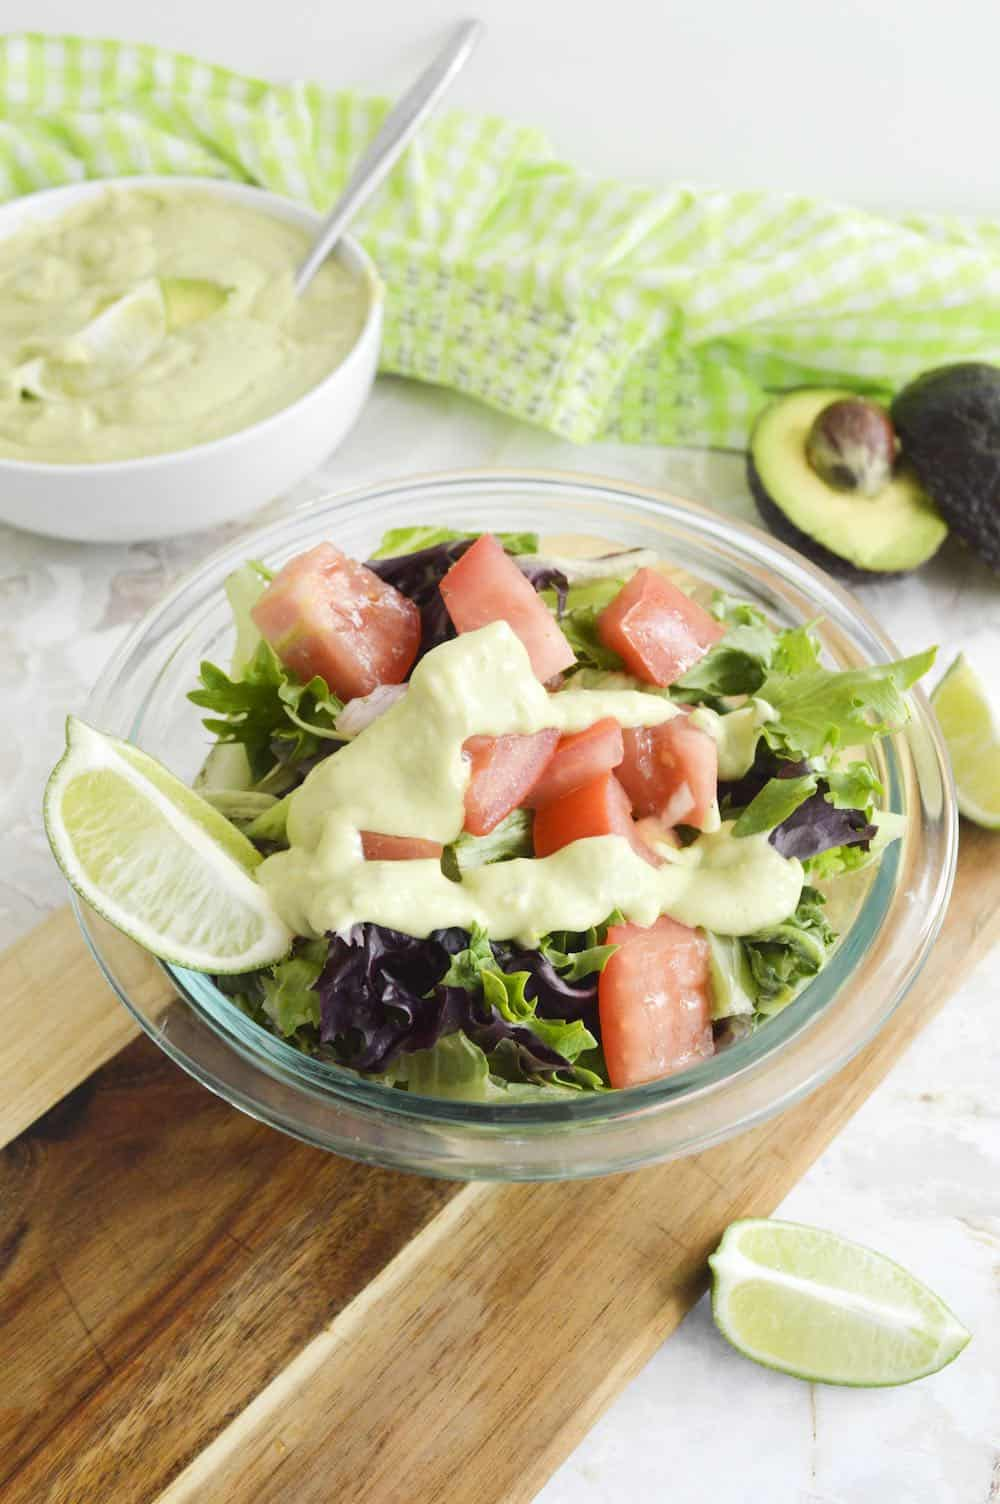 Creamy avocado lime dressing on a green salad.